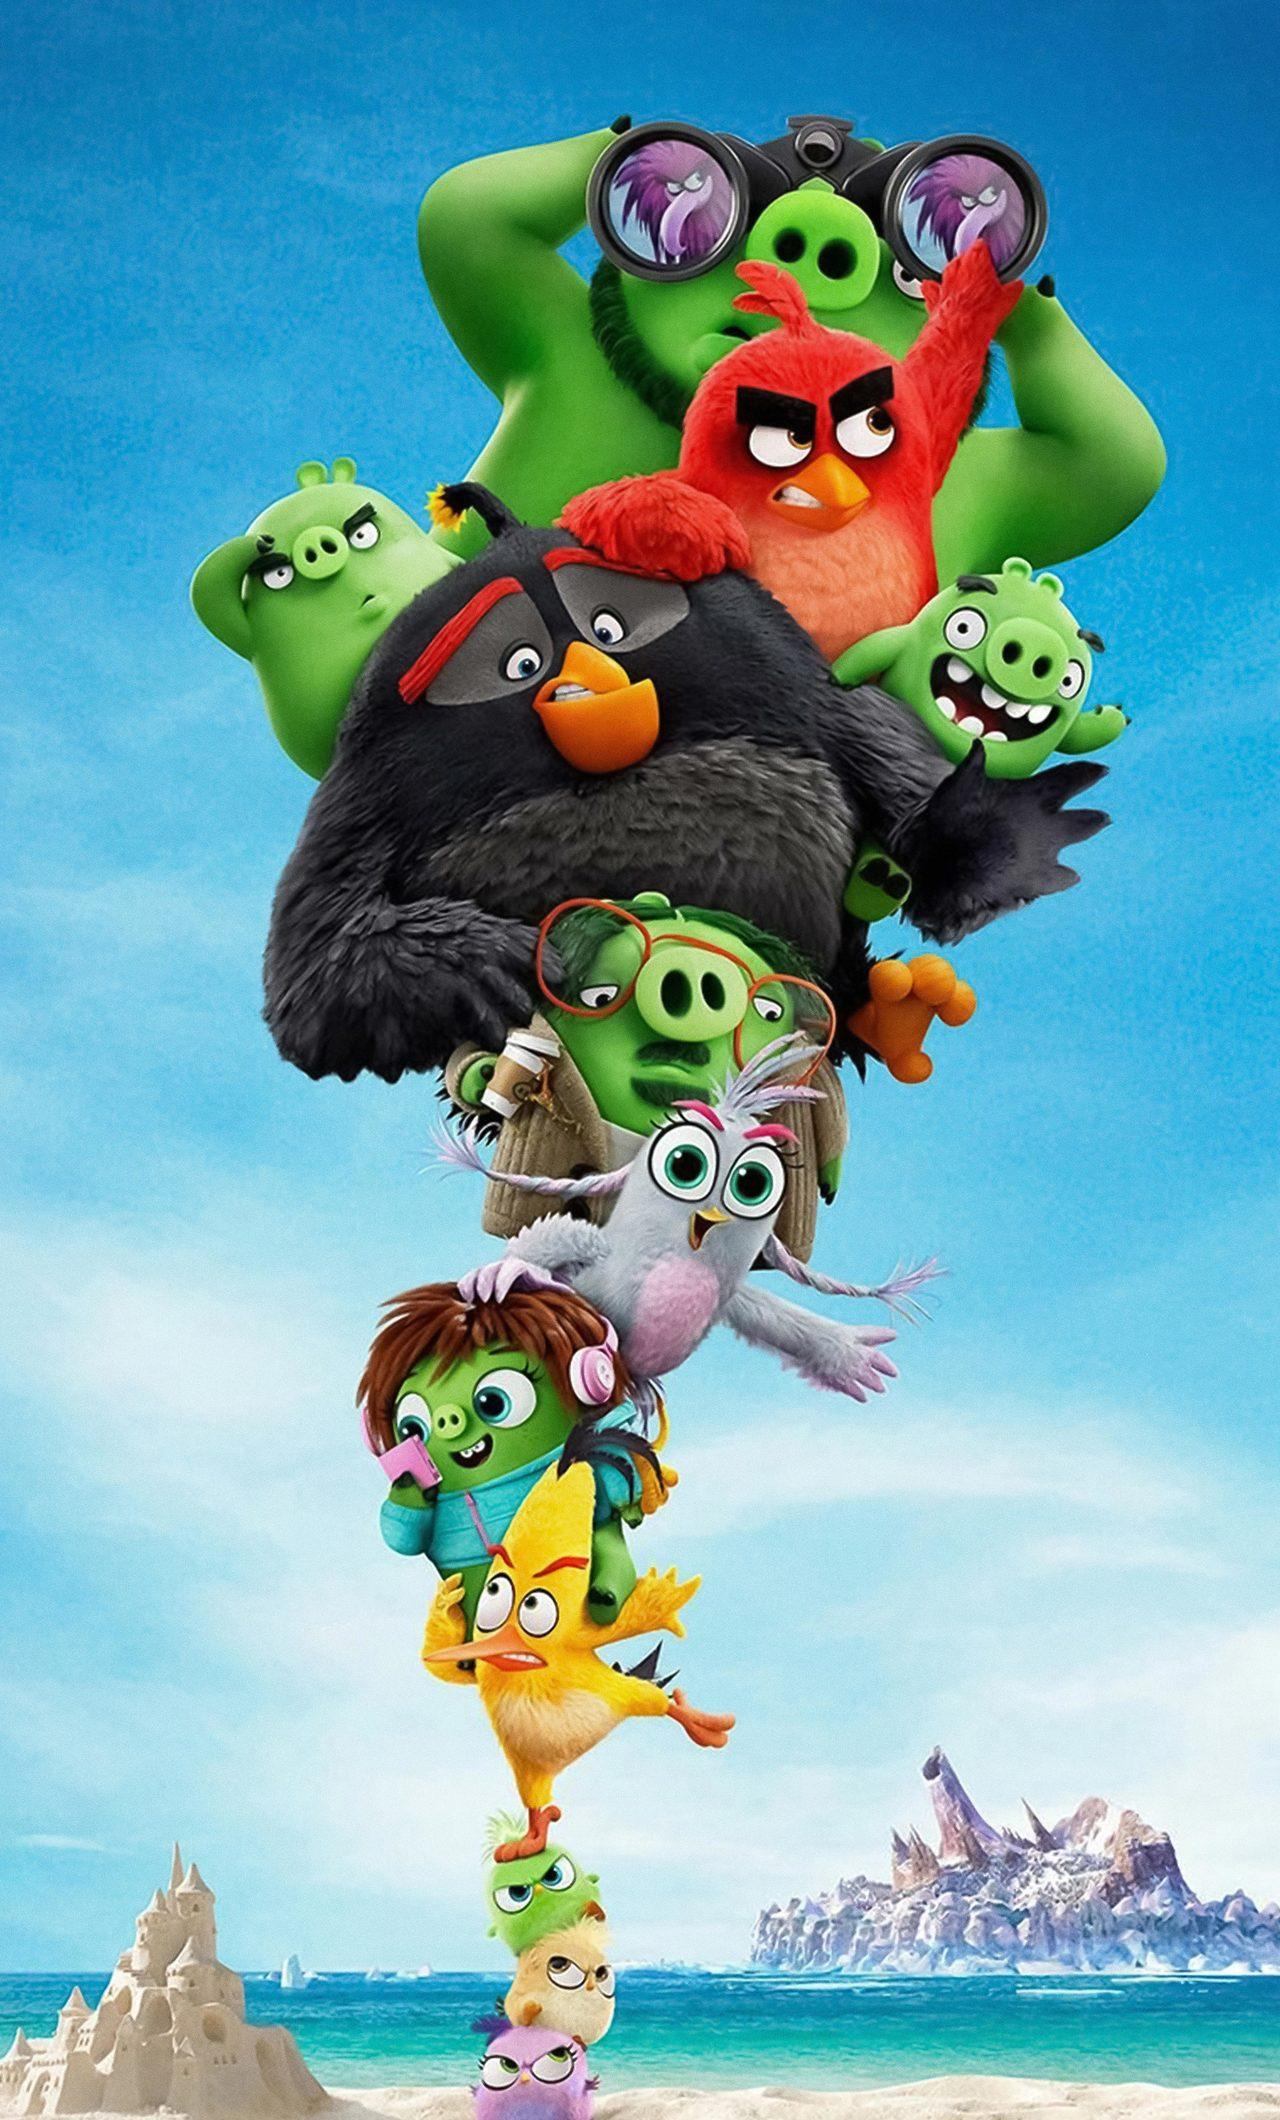 Angry Birds 2 Movie Wallpapers Wallpaper Cave